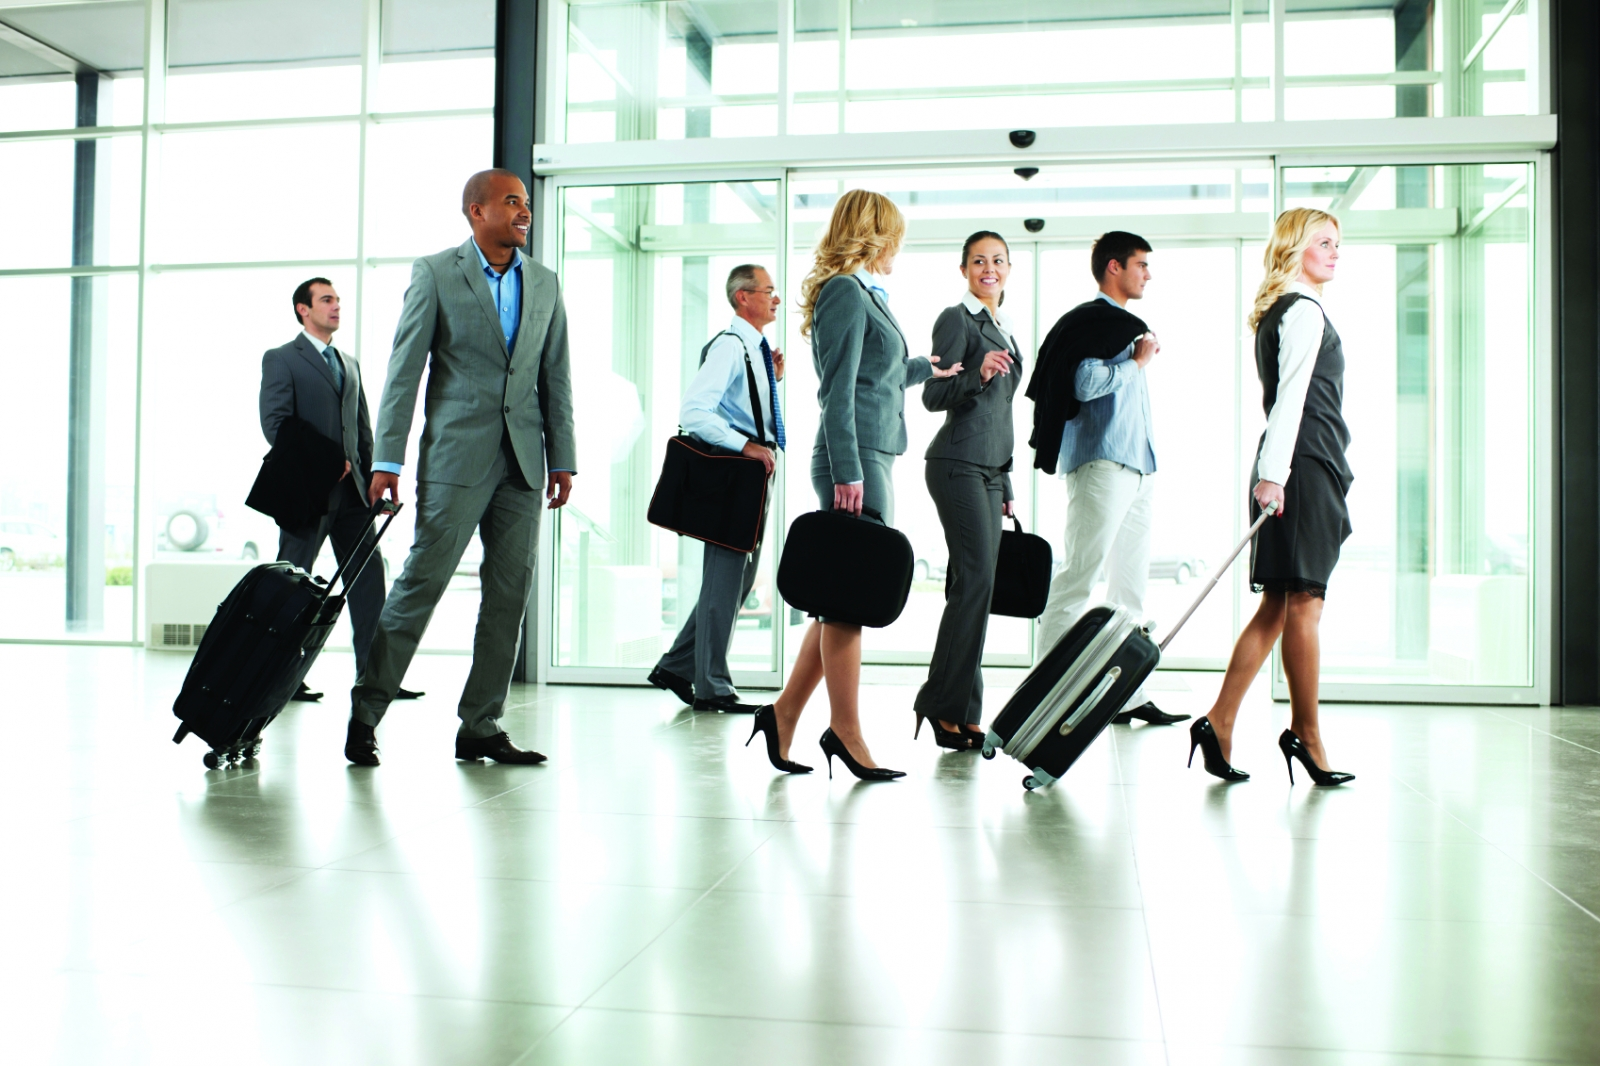 business-travel-image